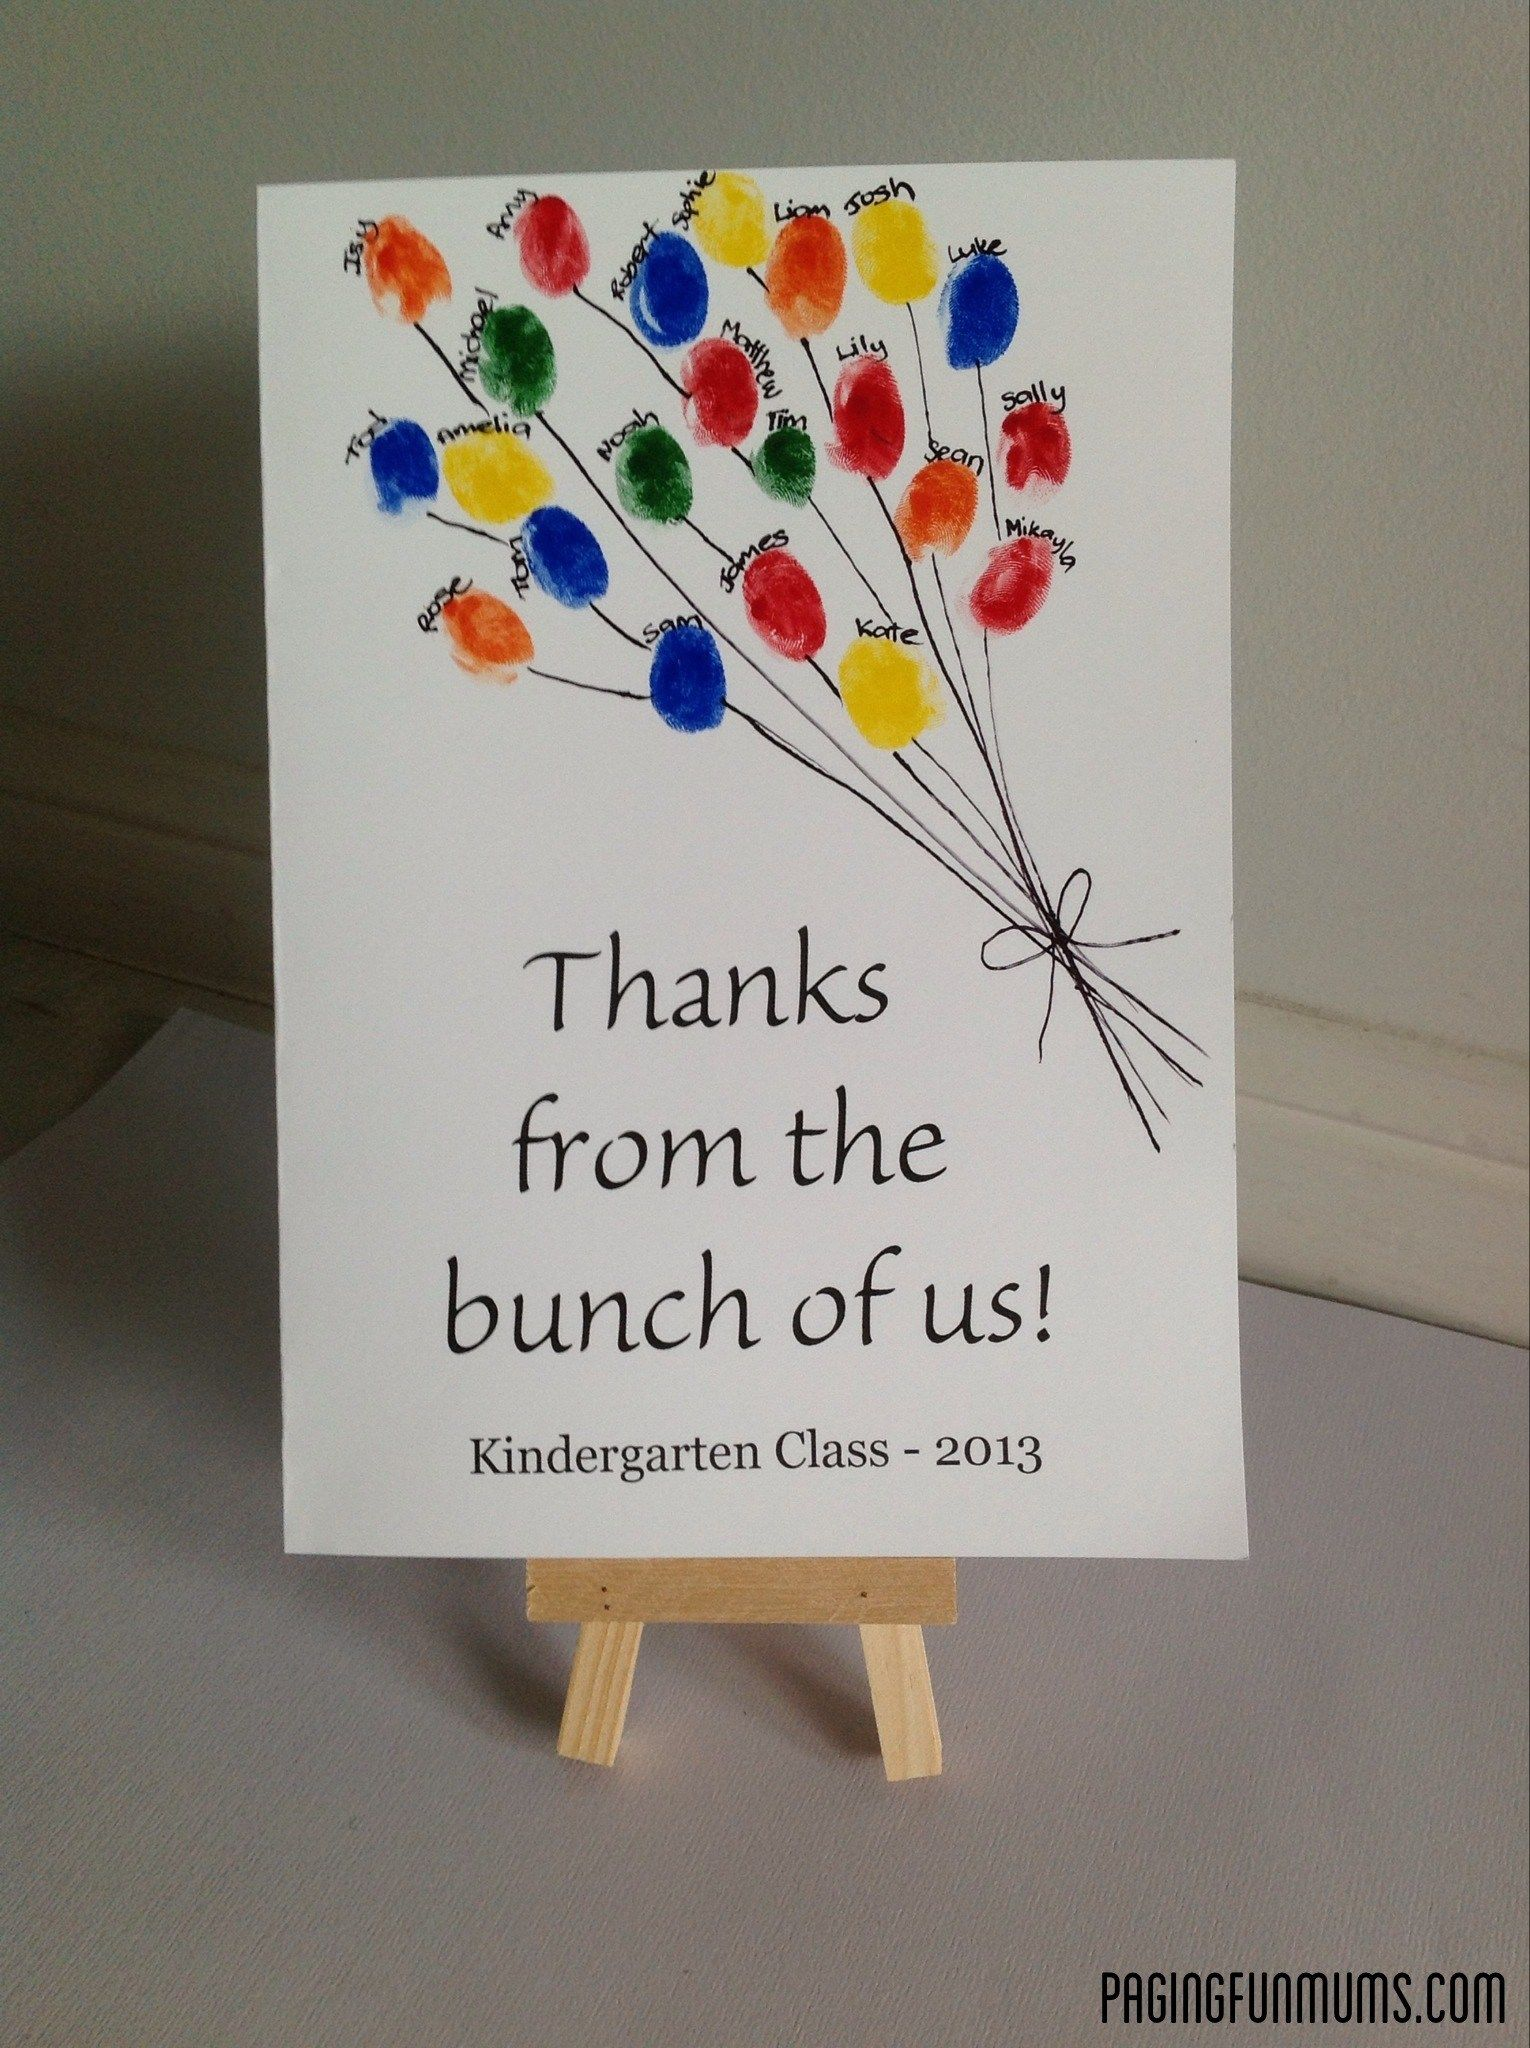 free online printable wedding thank you cards%0A Teacher aide card  u    Thanks from the bunch of us u     on white cardstock  got  each child to stamp their thumbprint using texters  water based   wrote  each child u    s